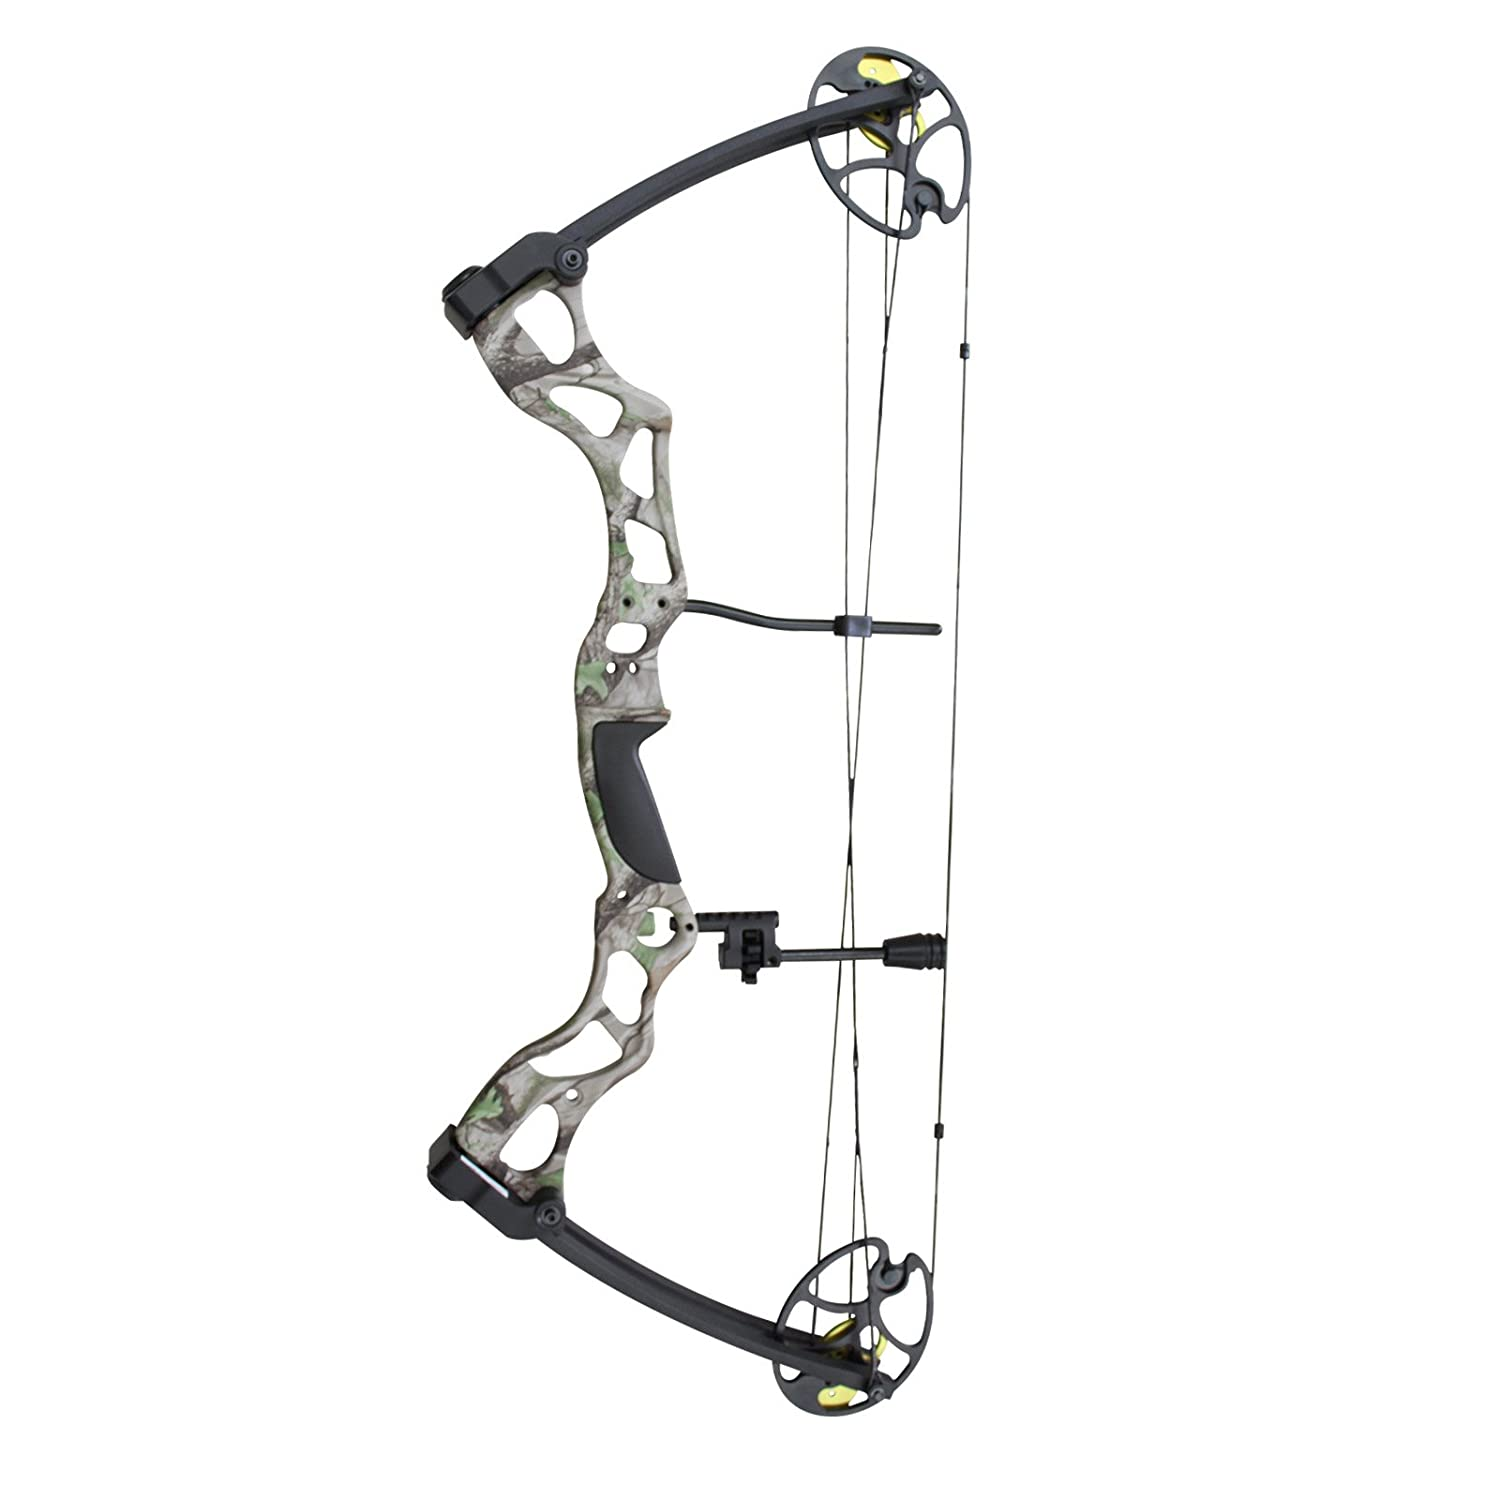 SAS Rage 70 Lbs 30'' Compound Bow review